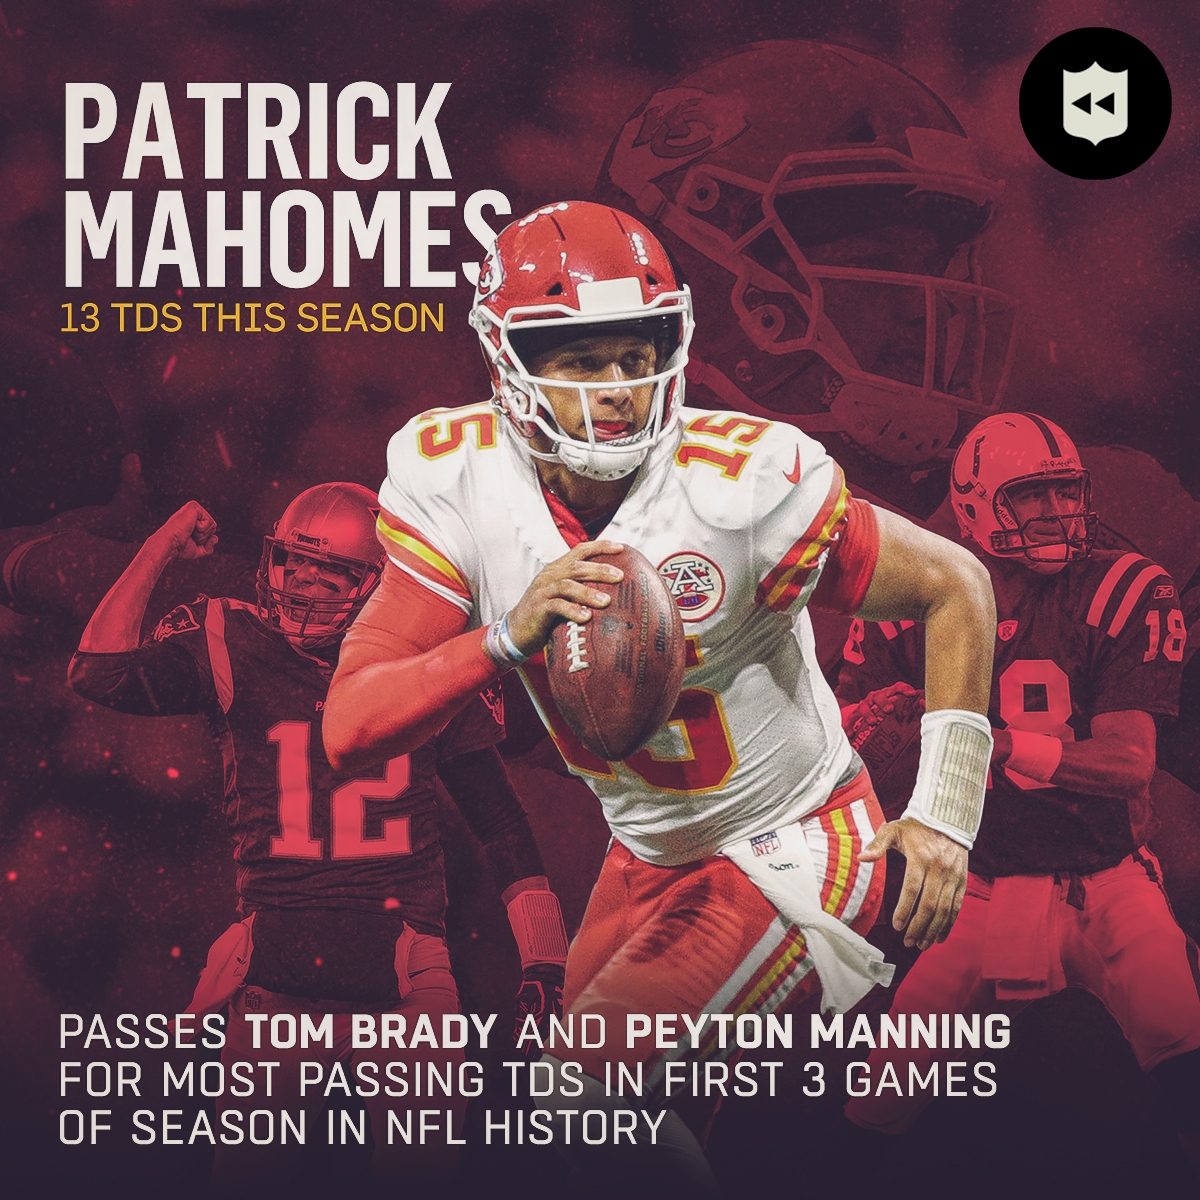 Mahomes_TDs_Throwback_002.jpg